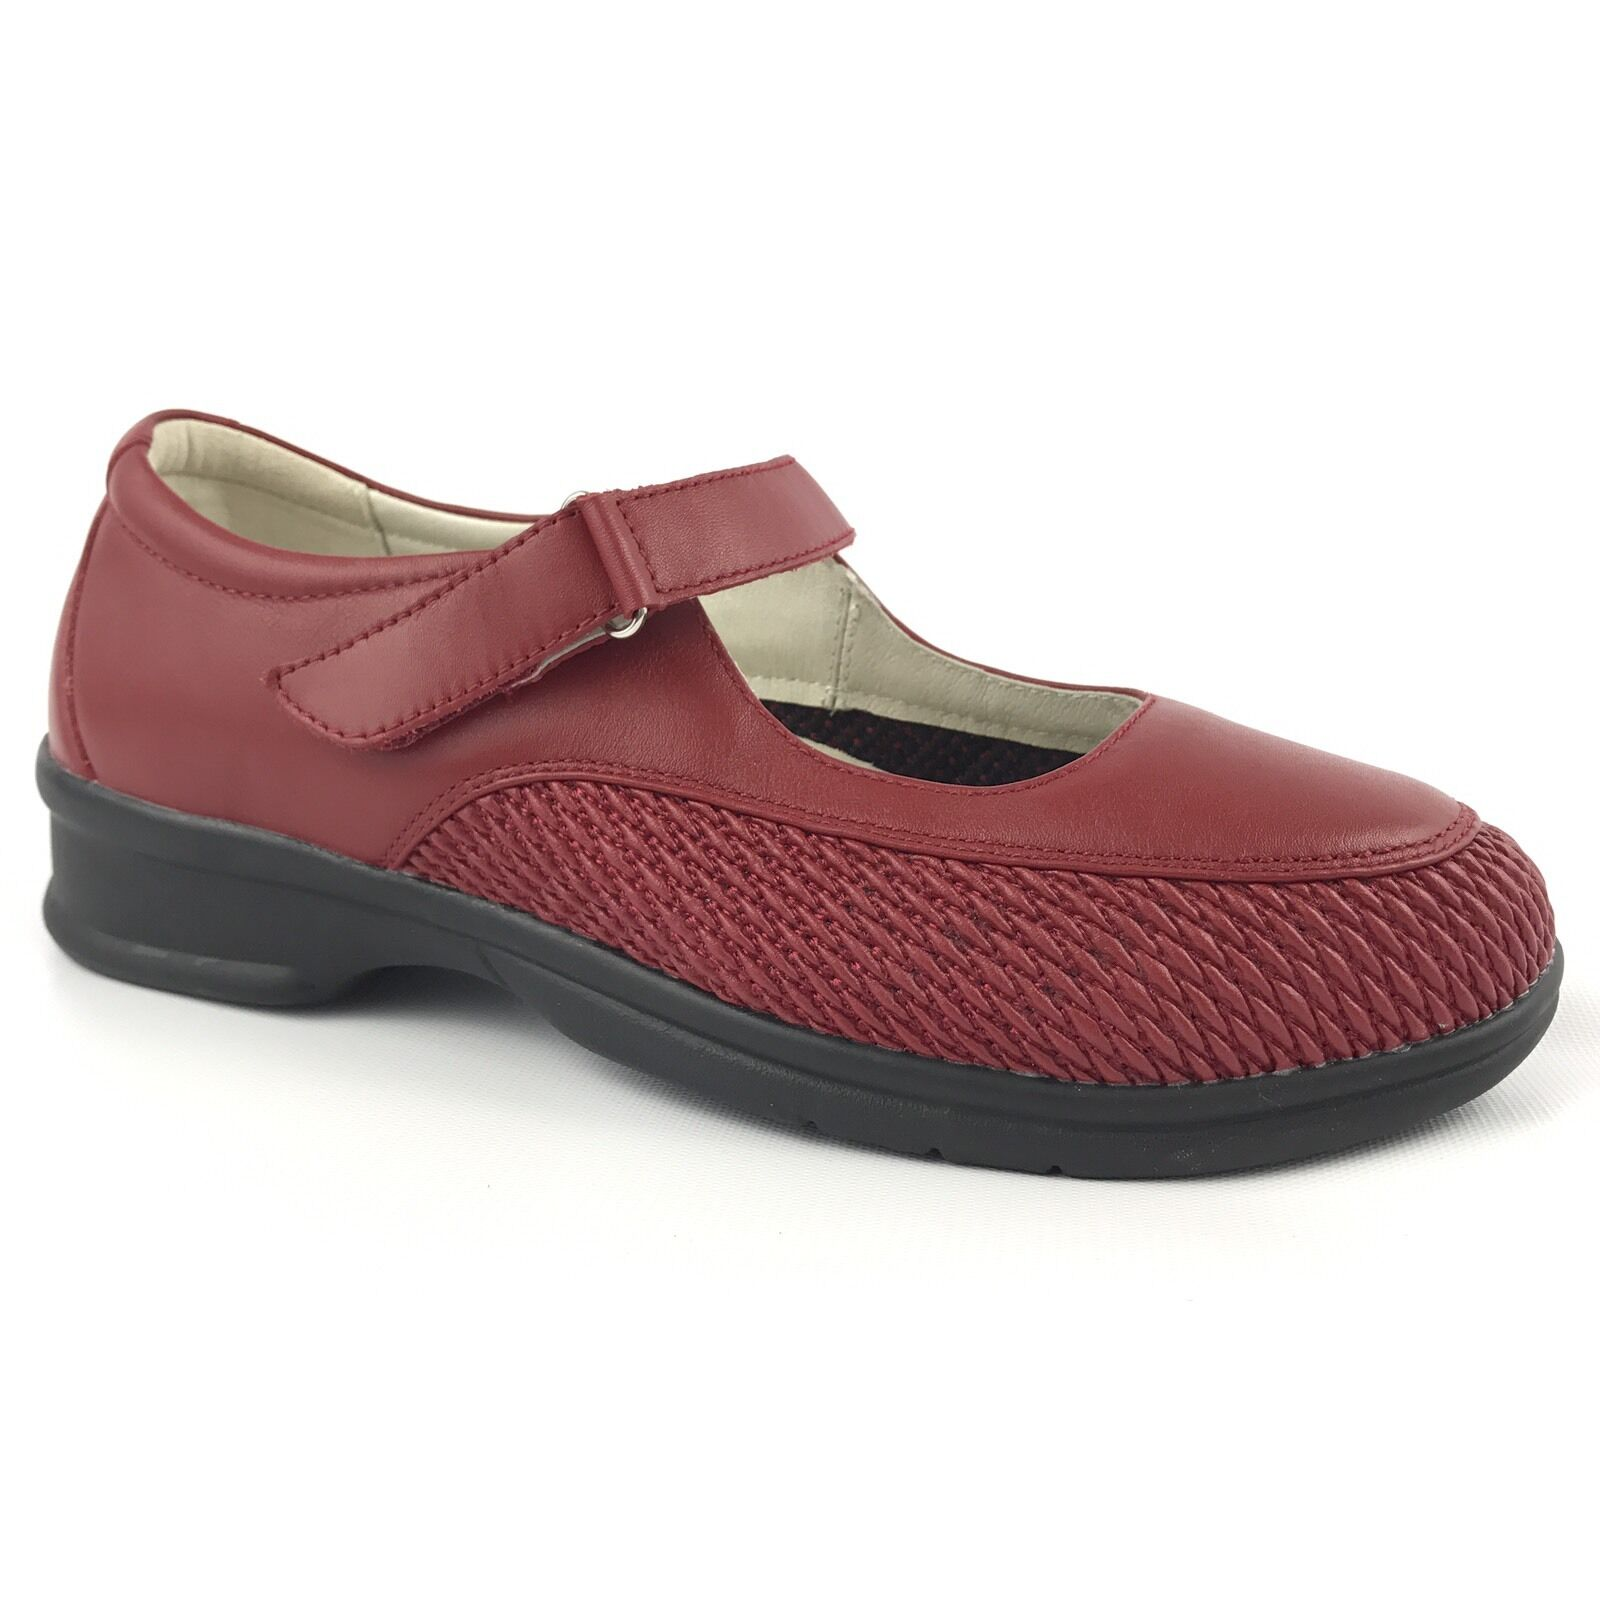 Propet ped rx donna rosso sautope 10 leather rubber sole rex insole strap low heel